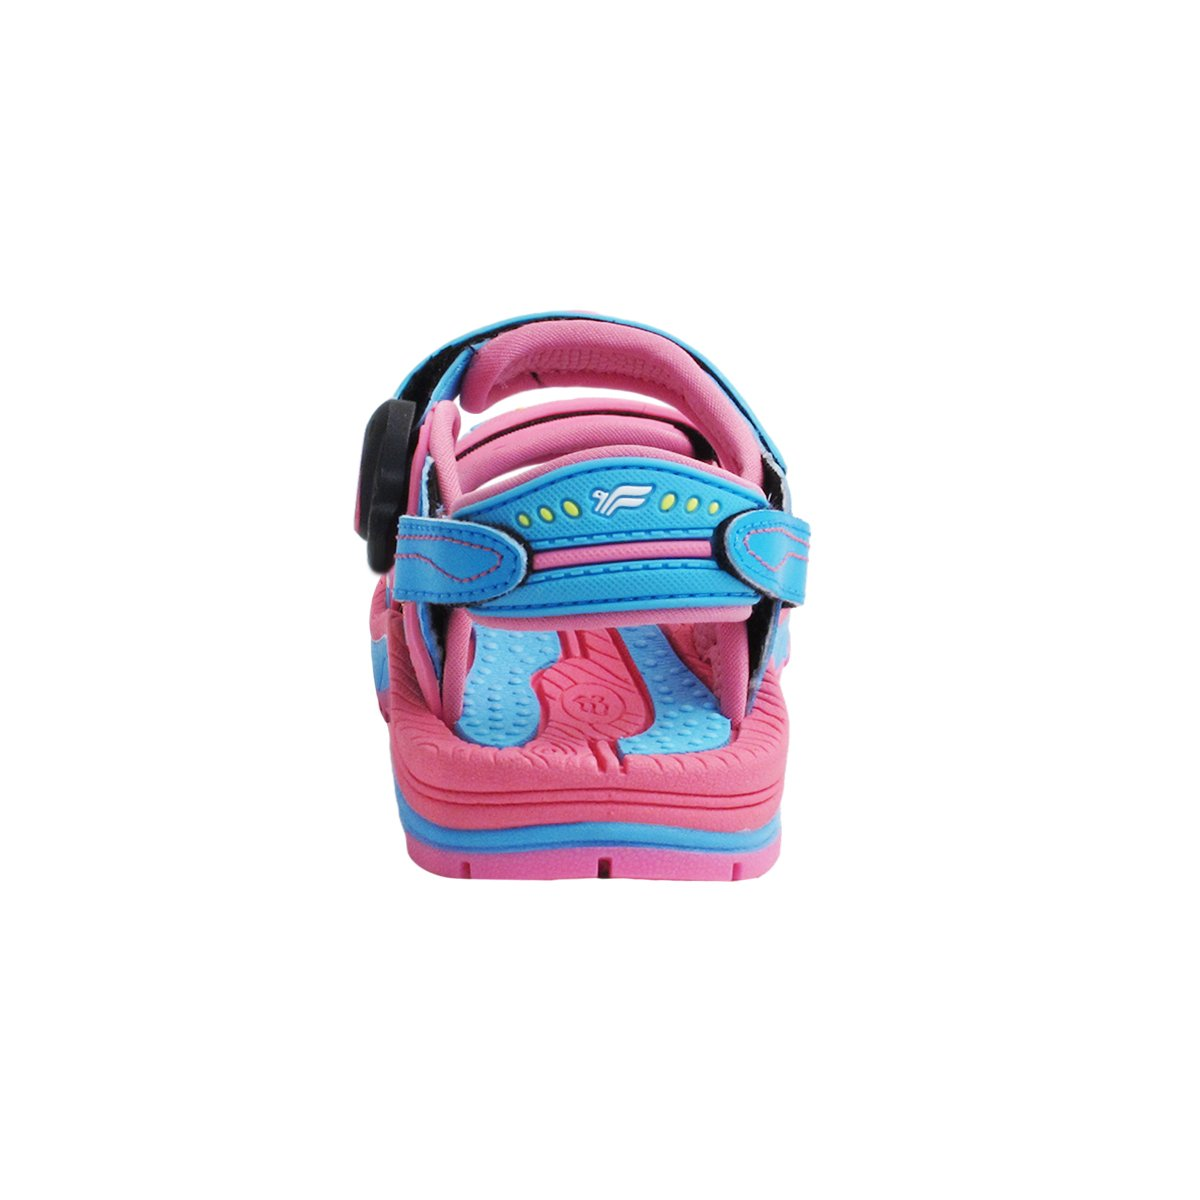 Easy On//Off Toddler to Big Kids Water Shoe Kids Signature SNAP LOCK Sandals